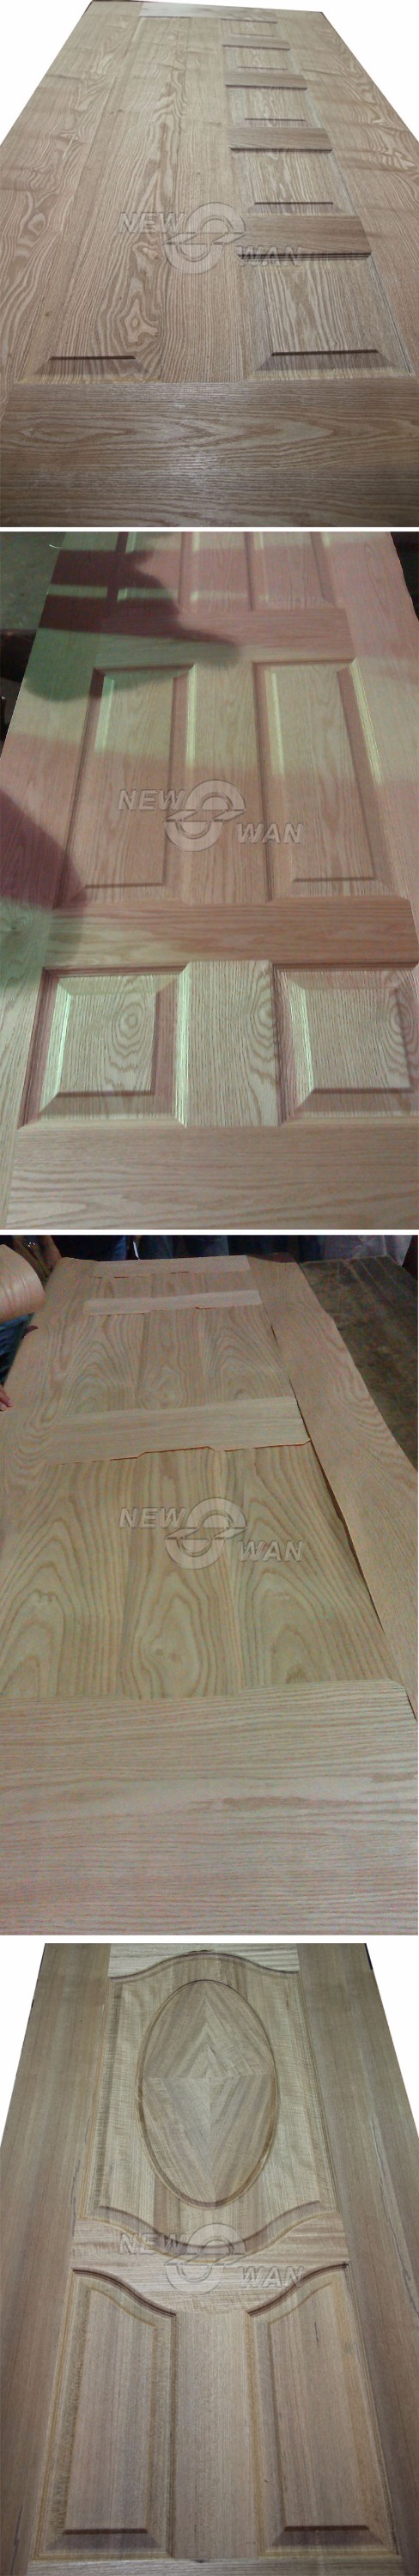 30 X 78 Interior Door Wood Veneer Moulded Door Skin Buy 30 X